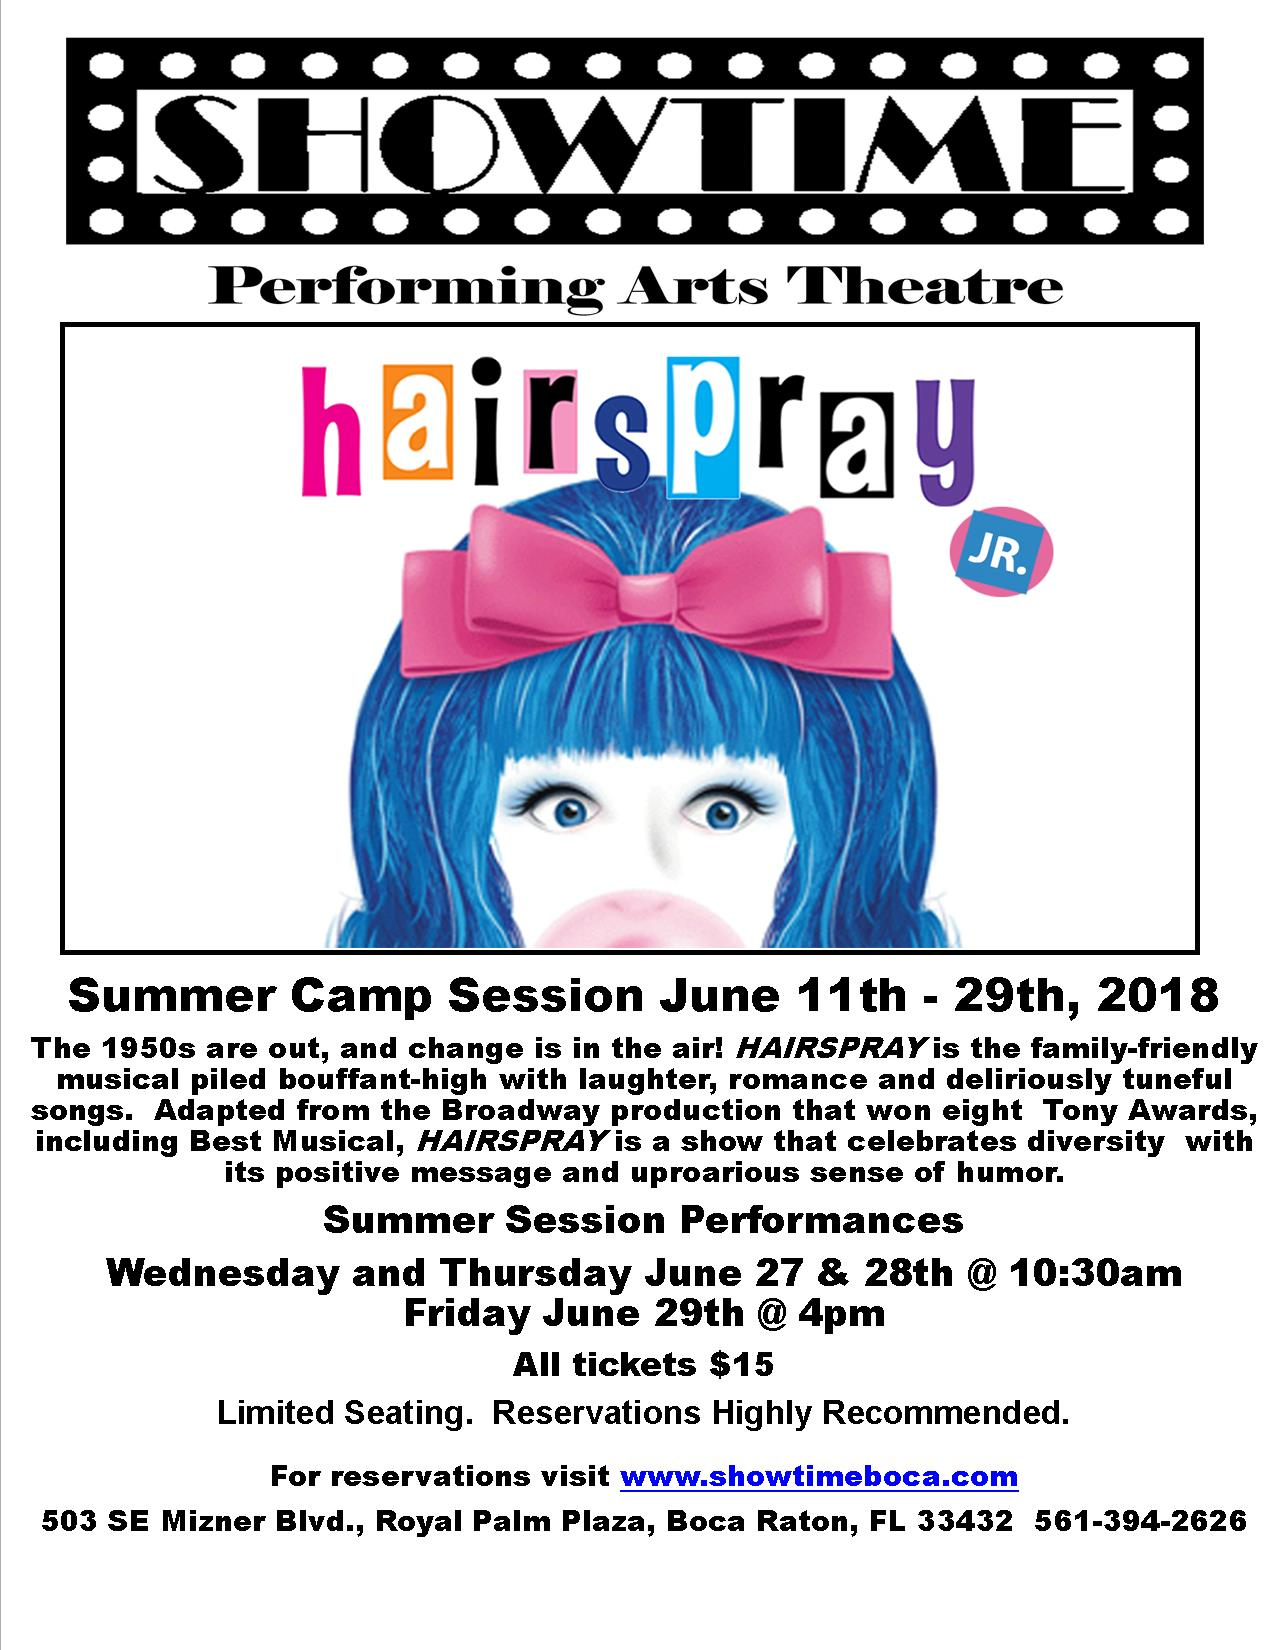 Summer Program - Musical Theatre Arts | Showtime Performing Arts Theatre